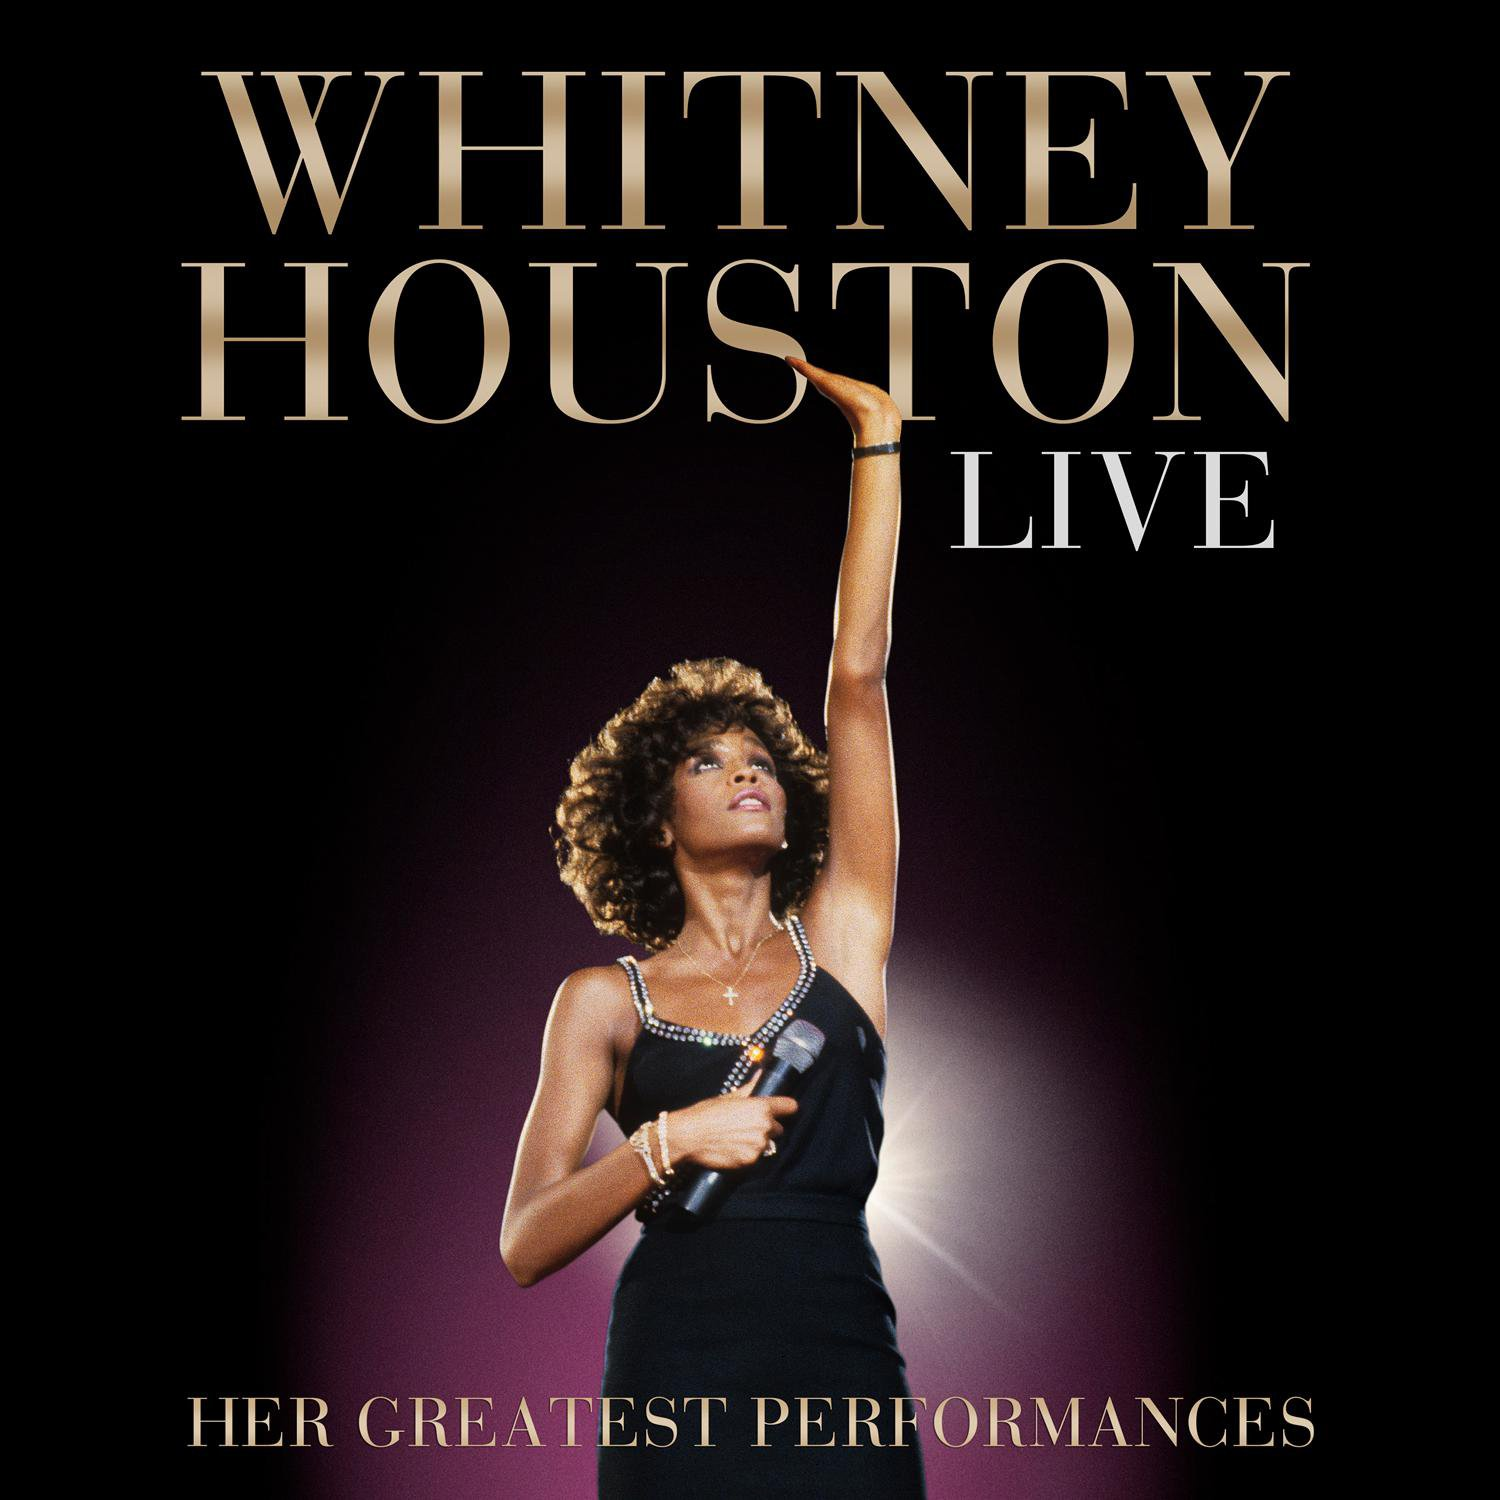 Whitney Houston Live: Her Greatest Performances by Arista